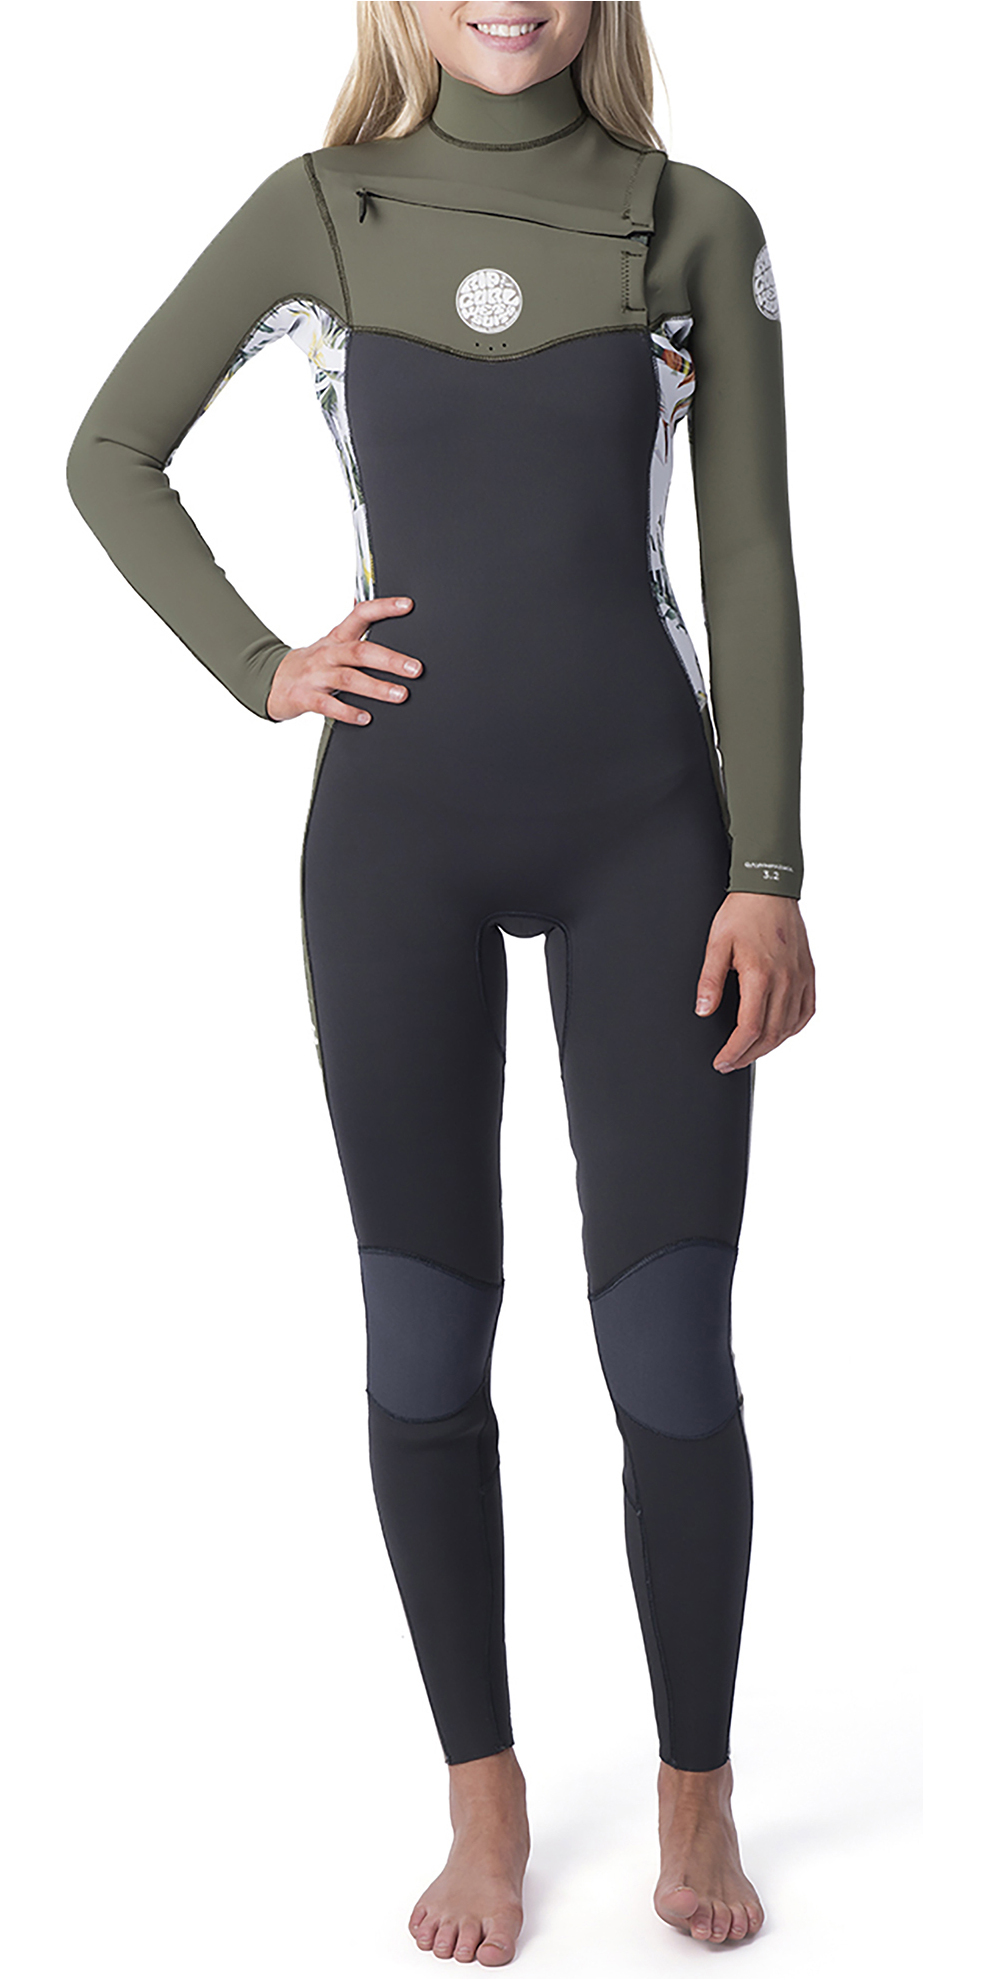 Light Flexible and Durable Construction for Watersports BILLABONG Ladies Synergy 5//4mm Back Zip Wetsuit in Black Sands